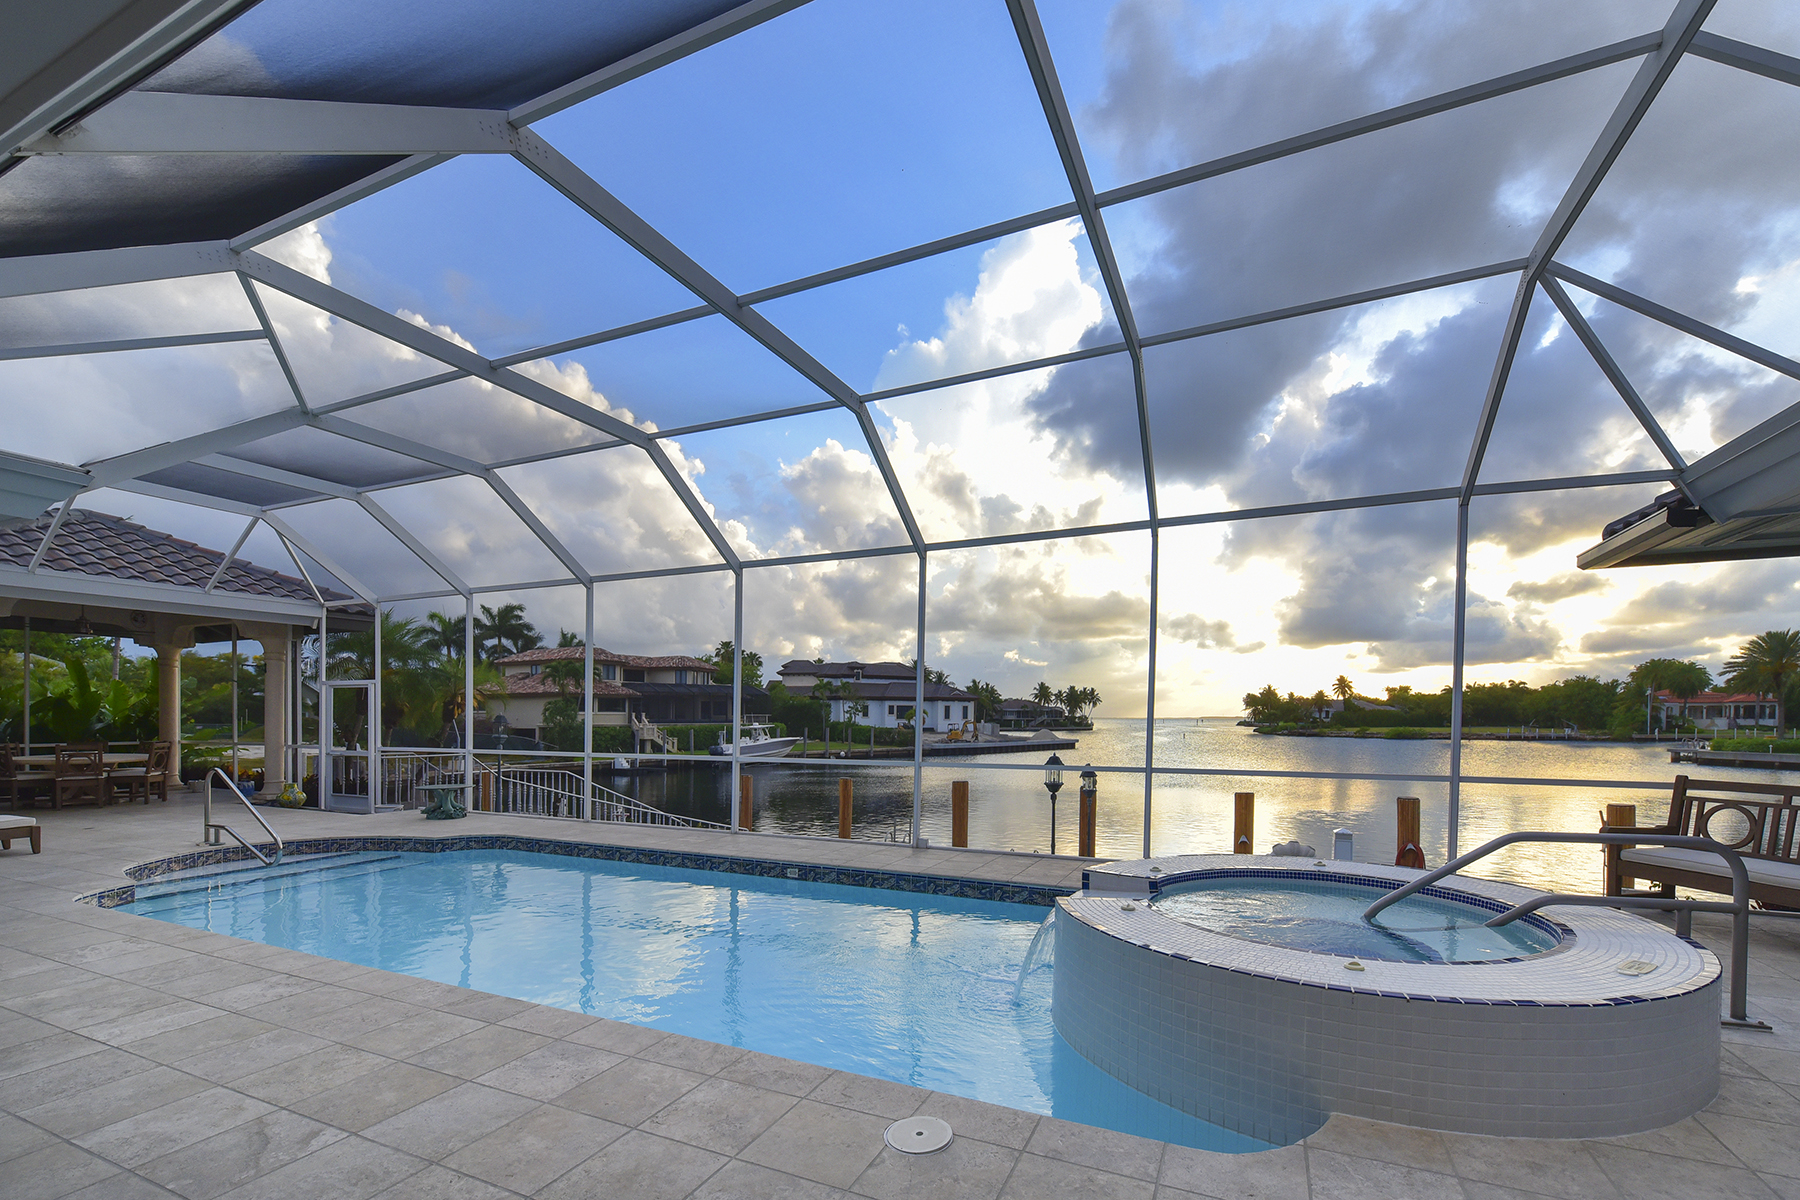 Additional photo for property listing at 5 Bay Ridge Road, Key Largo, FL 5 Bay Ridge Road Key Largo, Florida 33037 United States